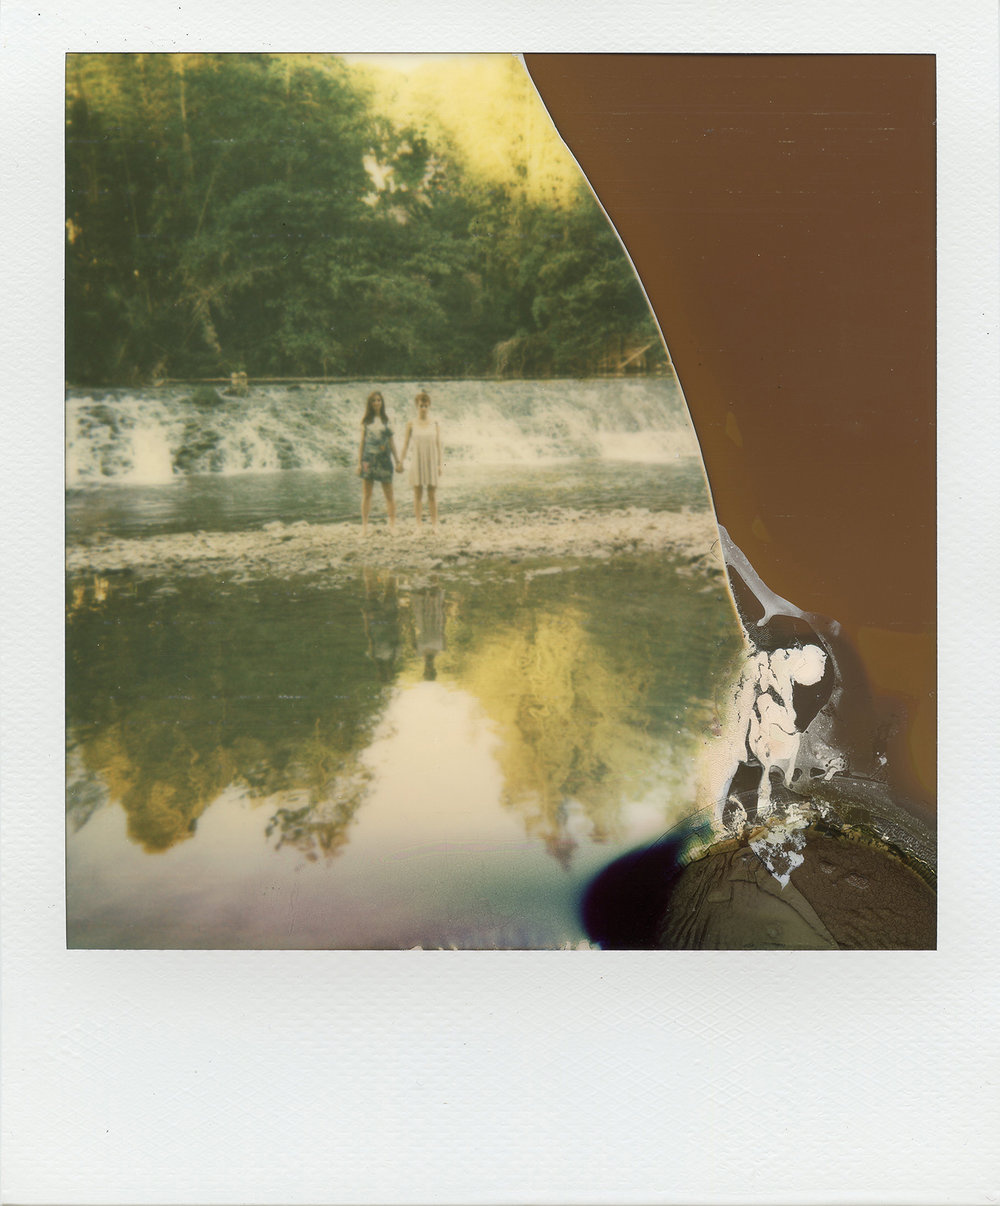 Lised and Psylvia | Polaroid Impulse | Impossible Color | La Fille Renne